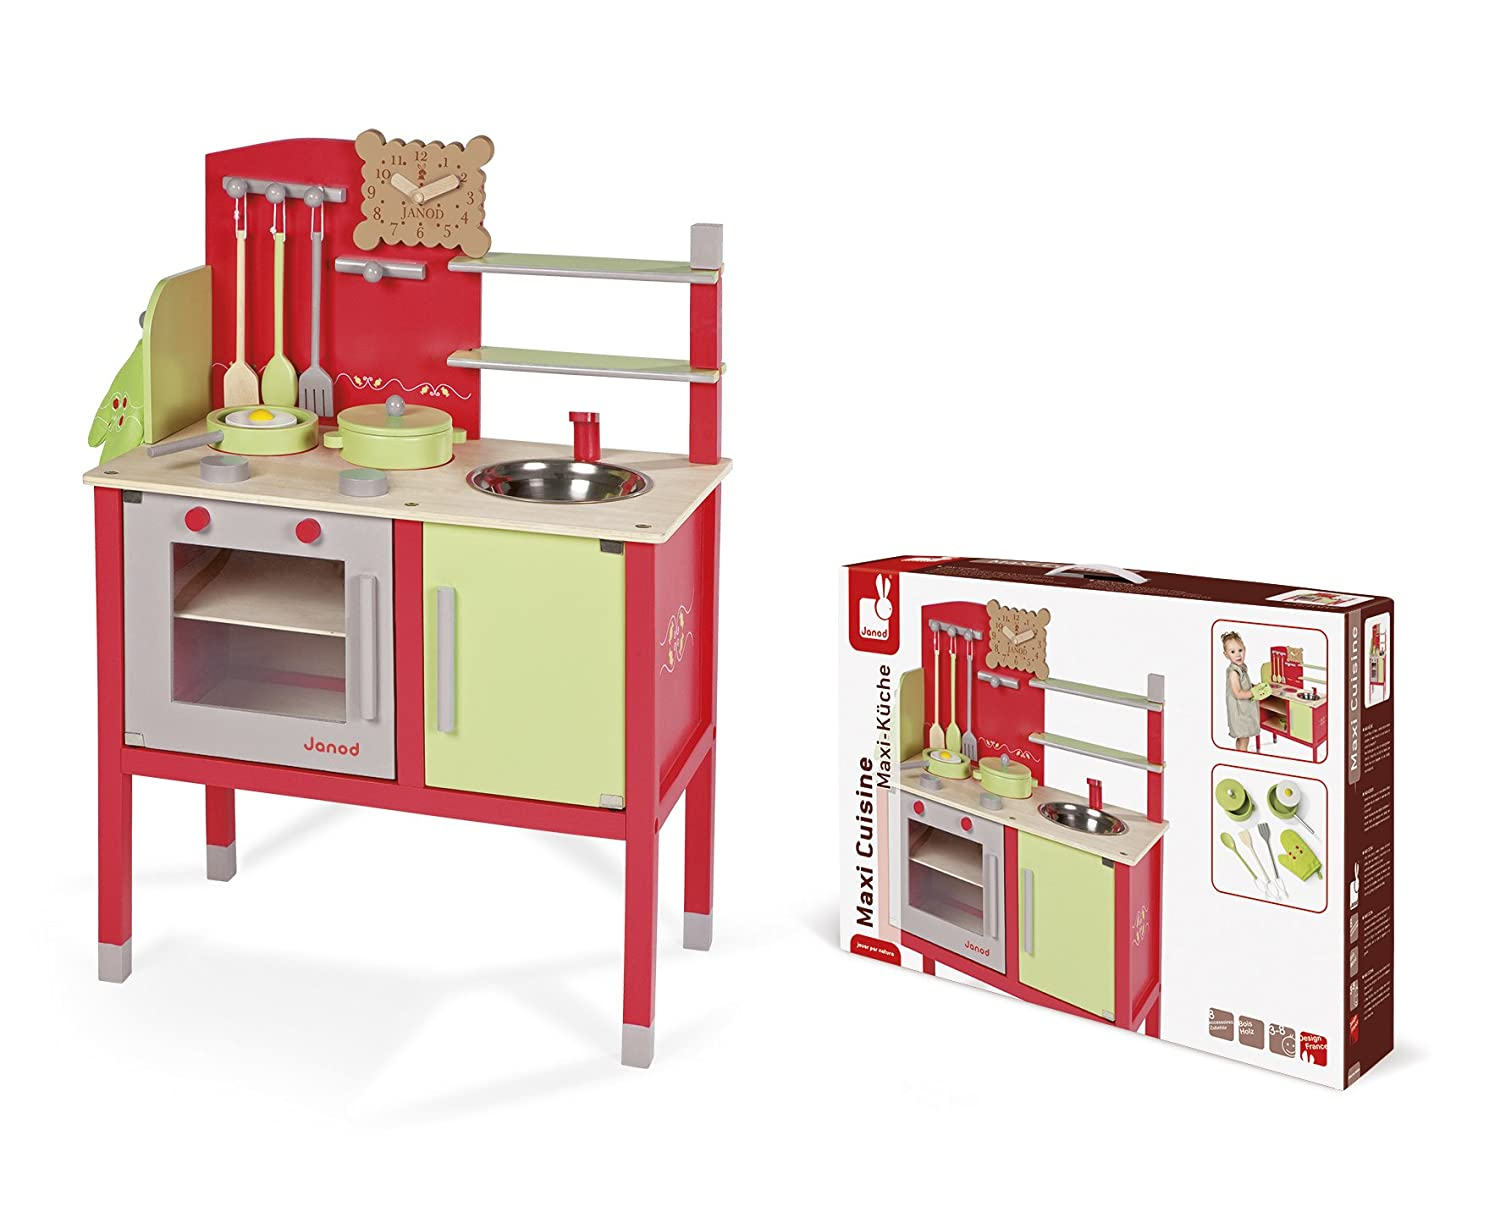 Mademoiselle Janod J06533 Wooden Maxi Cooker Pink